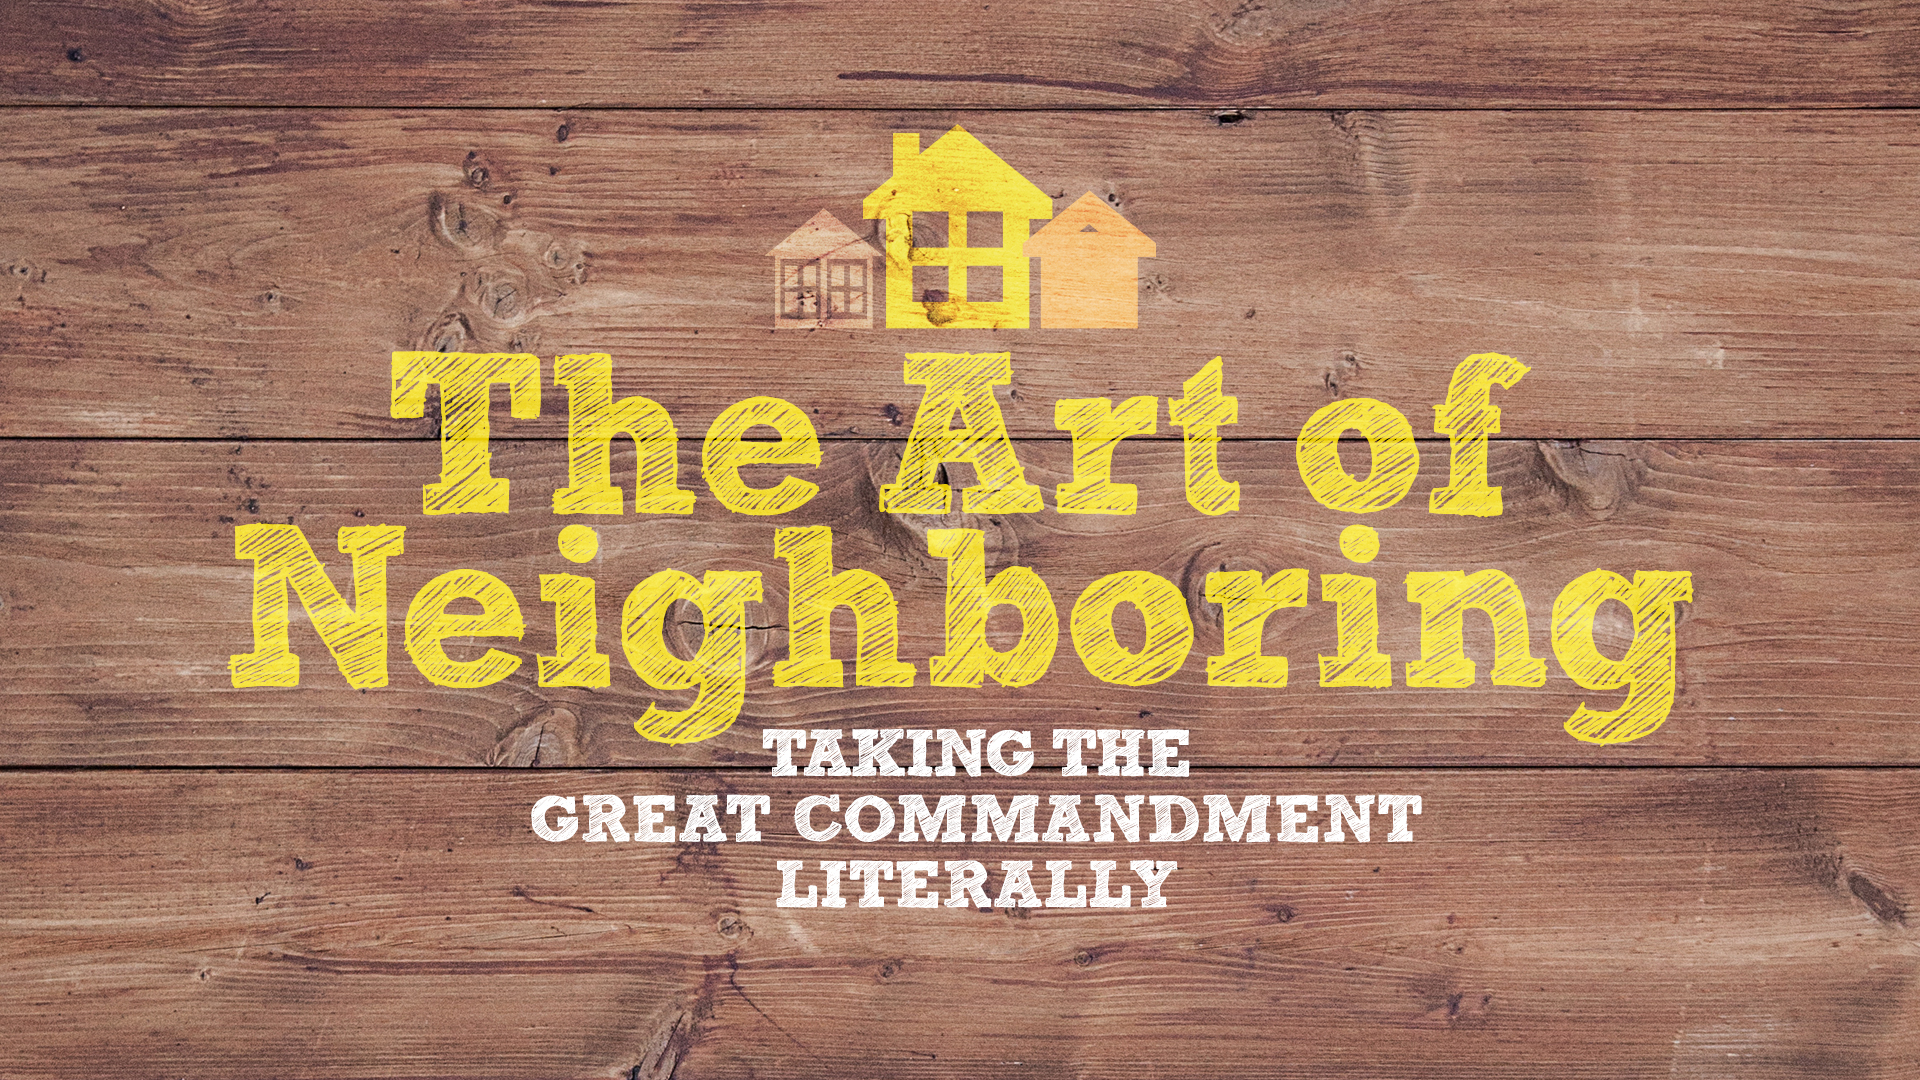 The Art of Neighboring: Taking the Great Commandment Literally